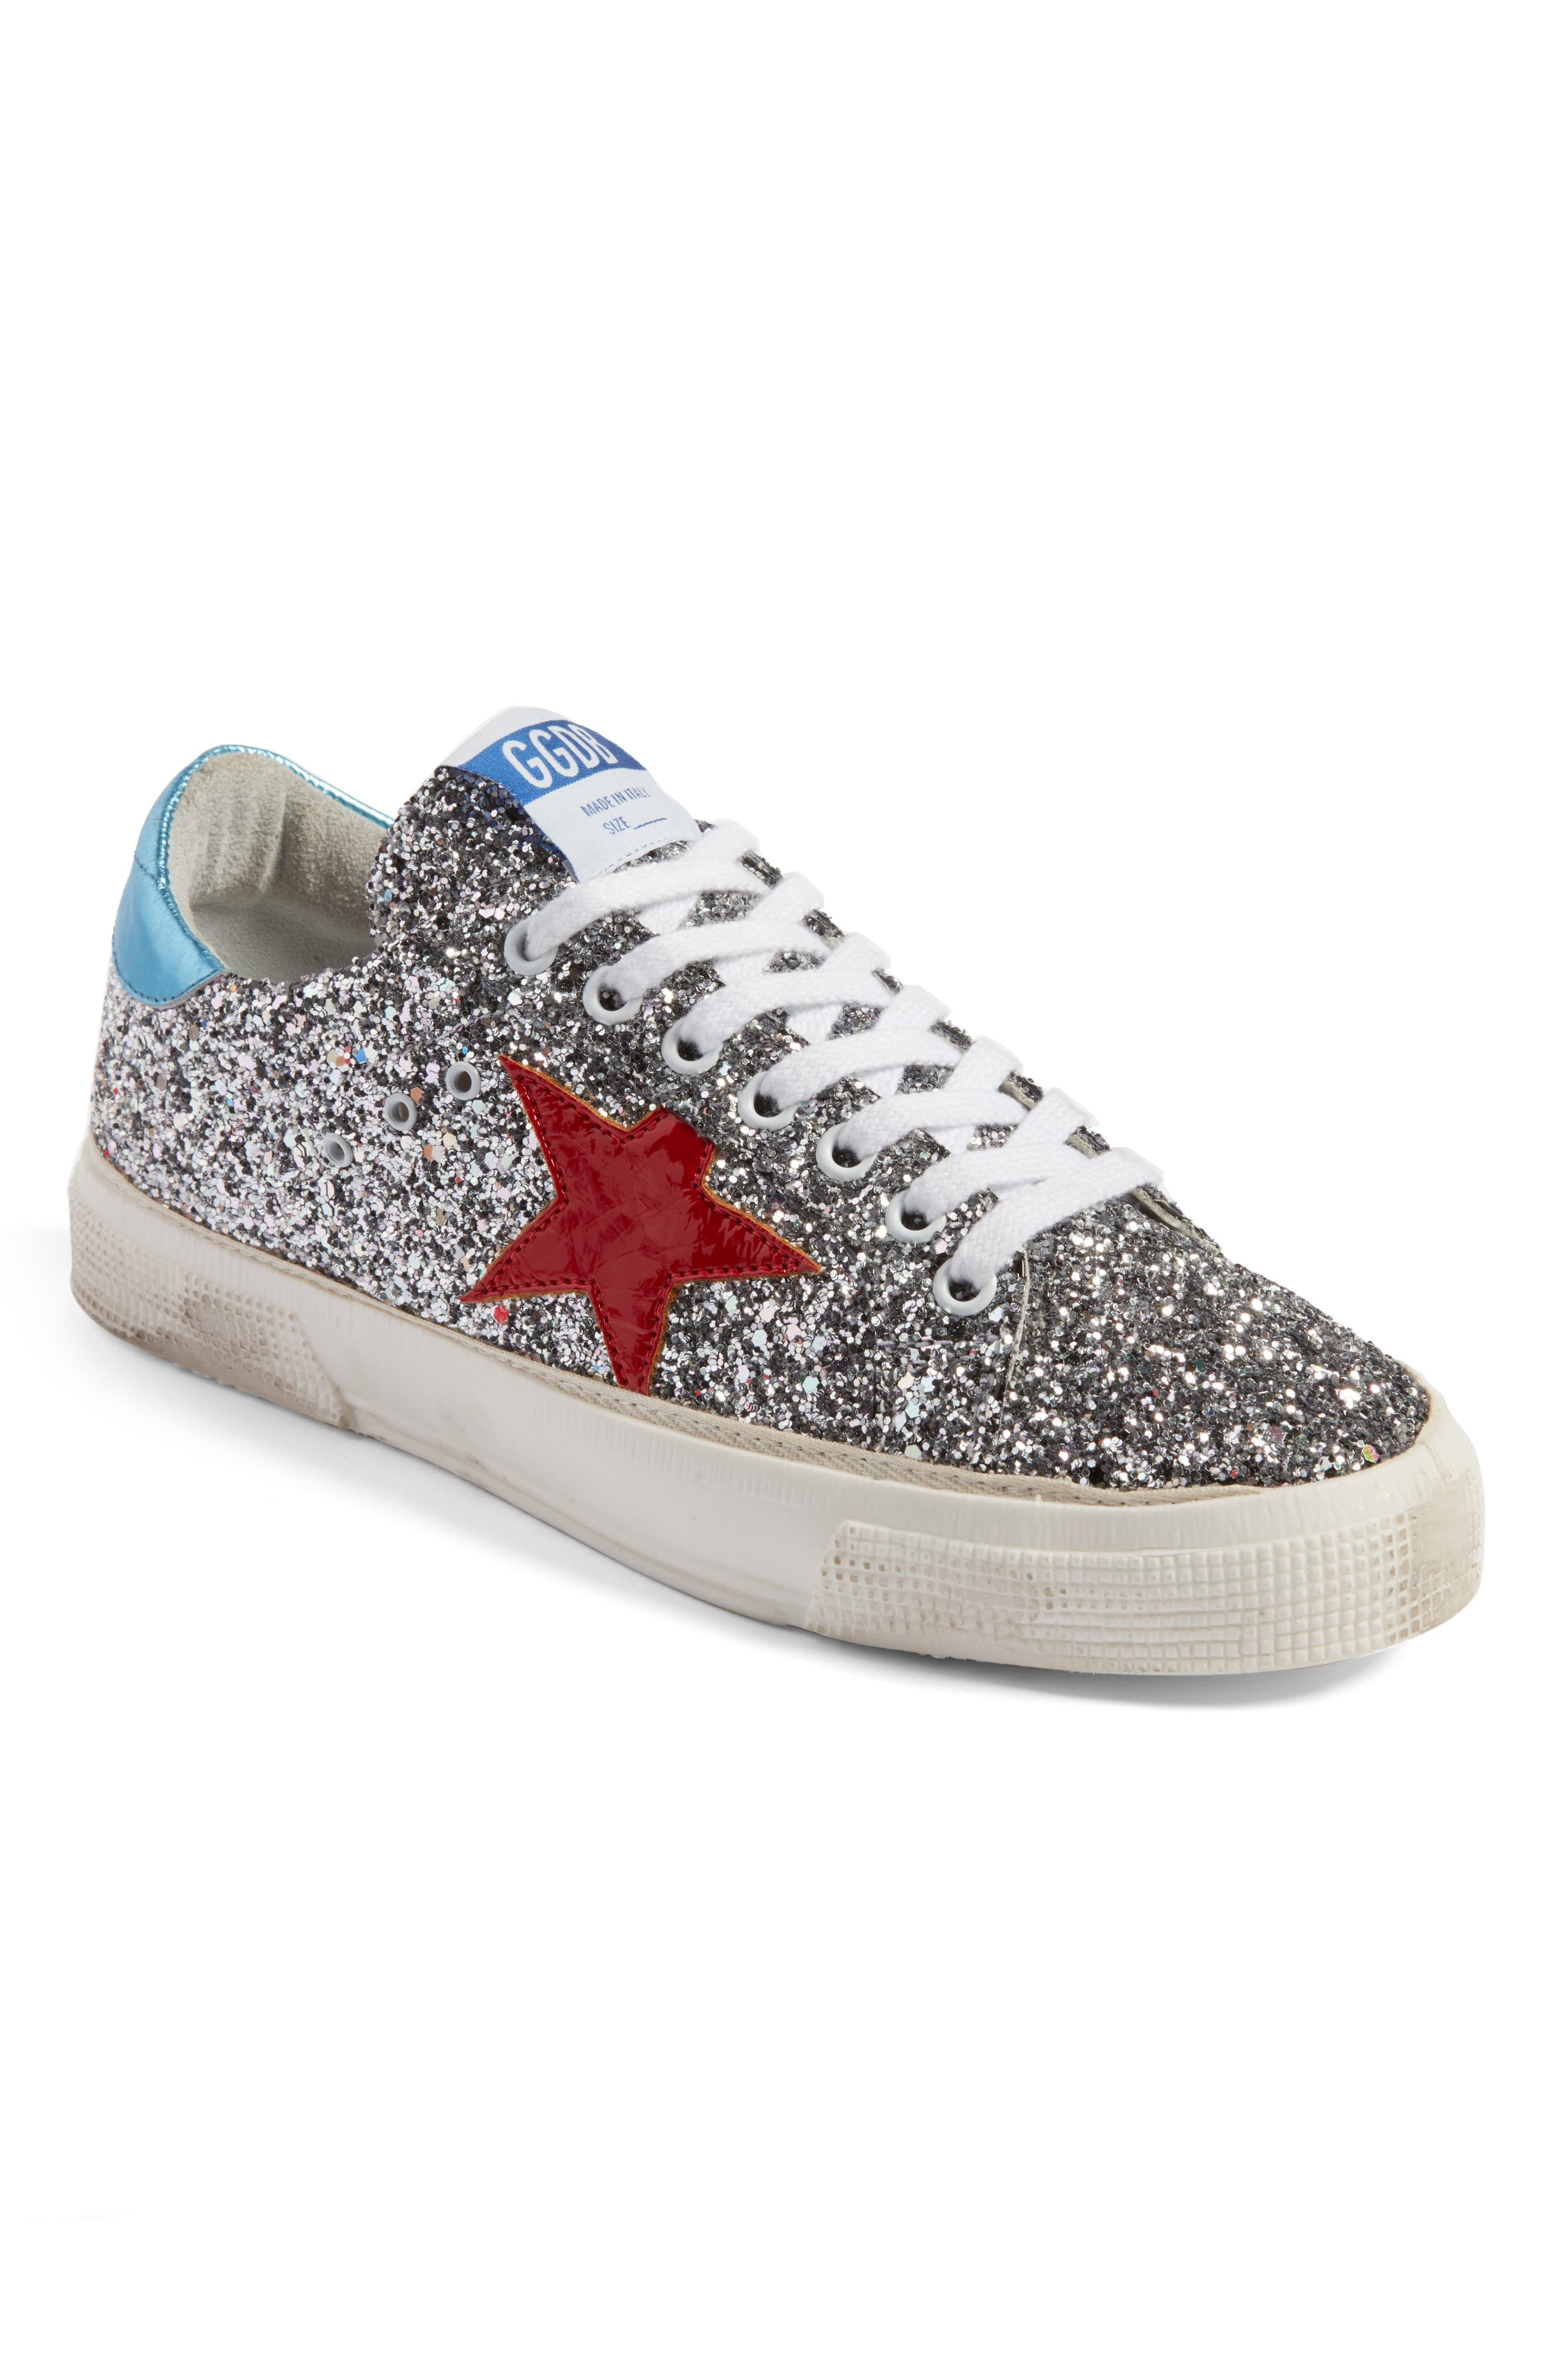 May Sneaker,                             Main thumbnail 1, color,                             Silver Glitter/ Red